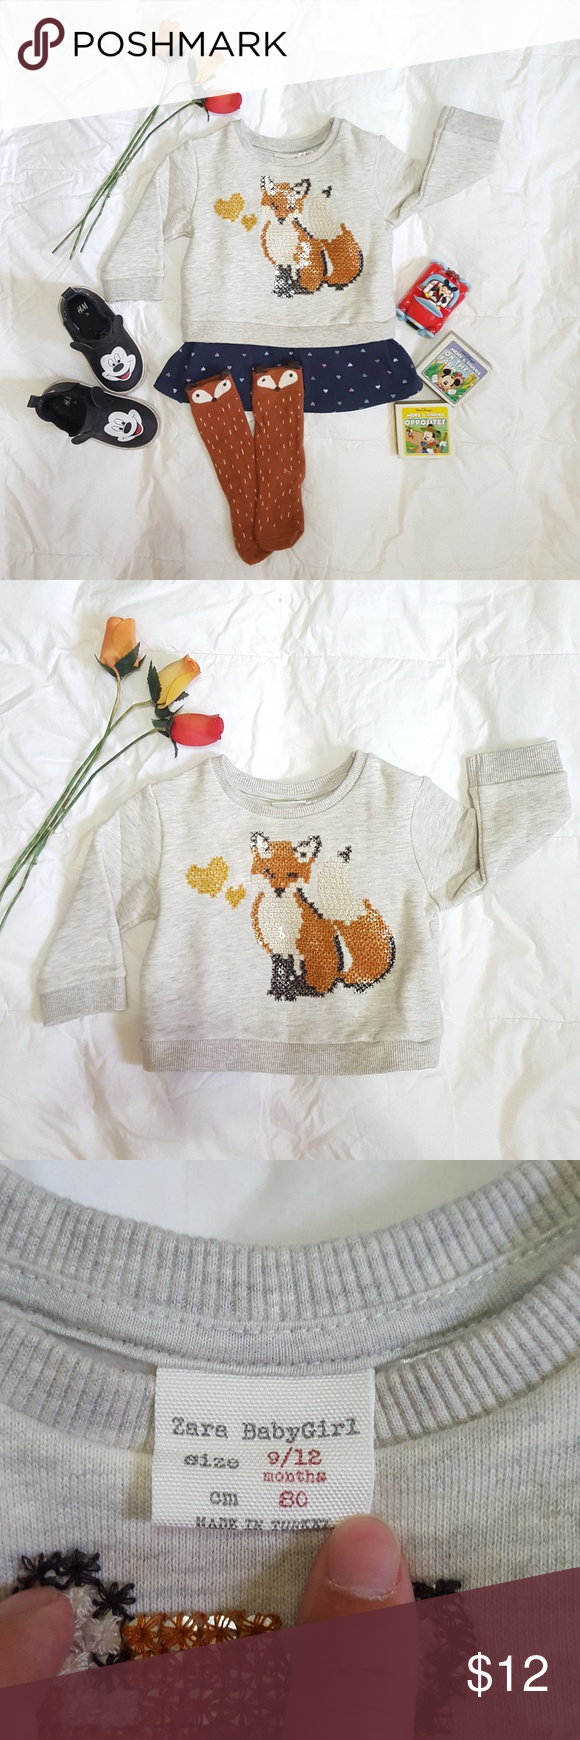 Zara baby girl sweater (With images) | Baby girl sweaters ...